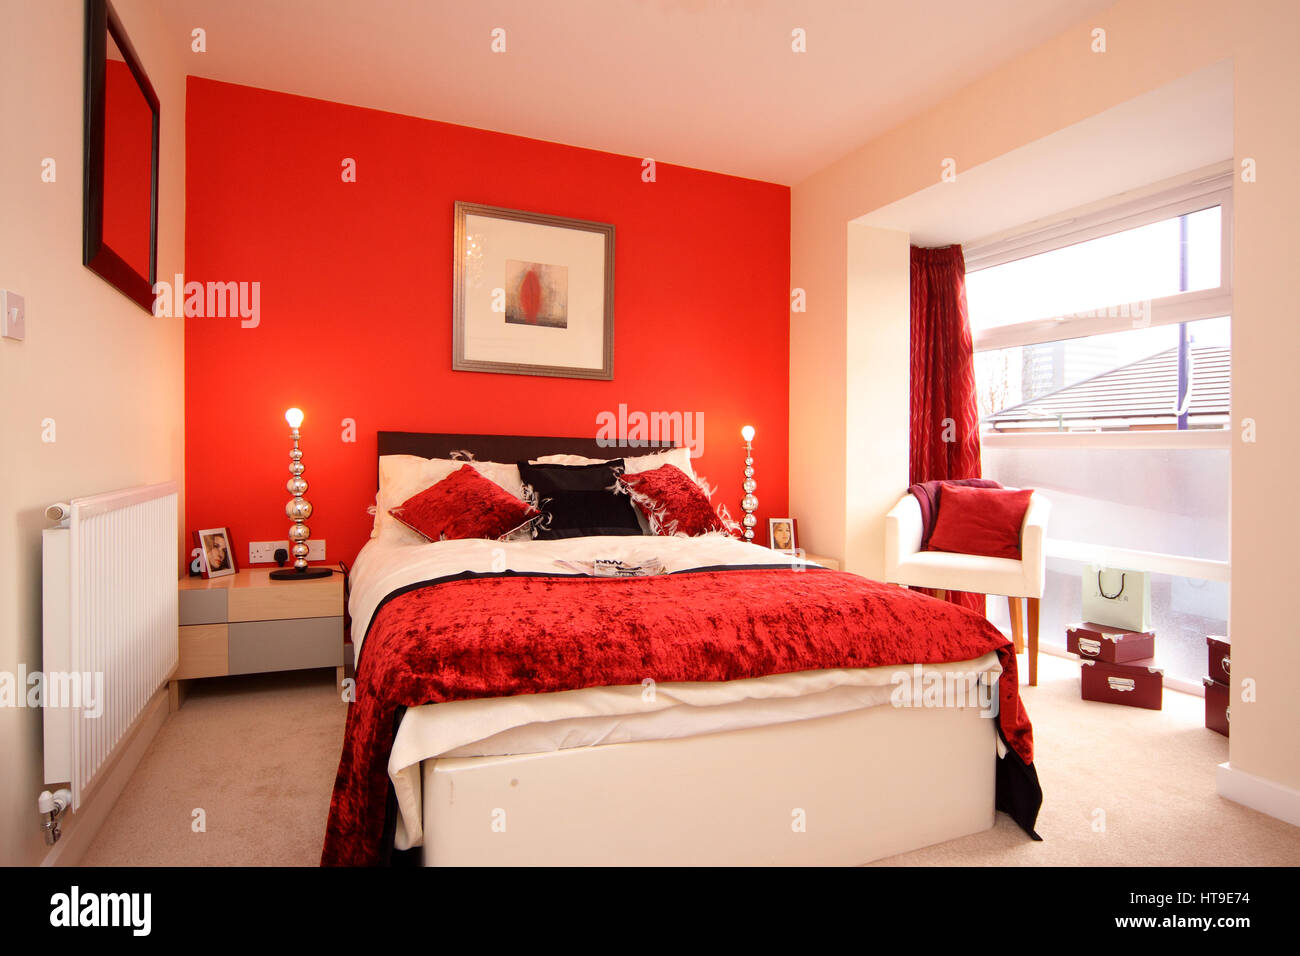 Home interior. bedroom in bright red, feature wall, bed ...